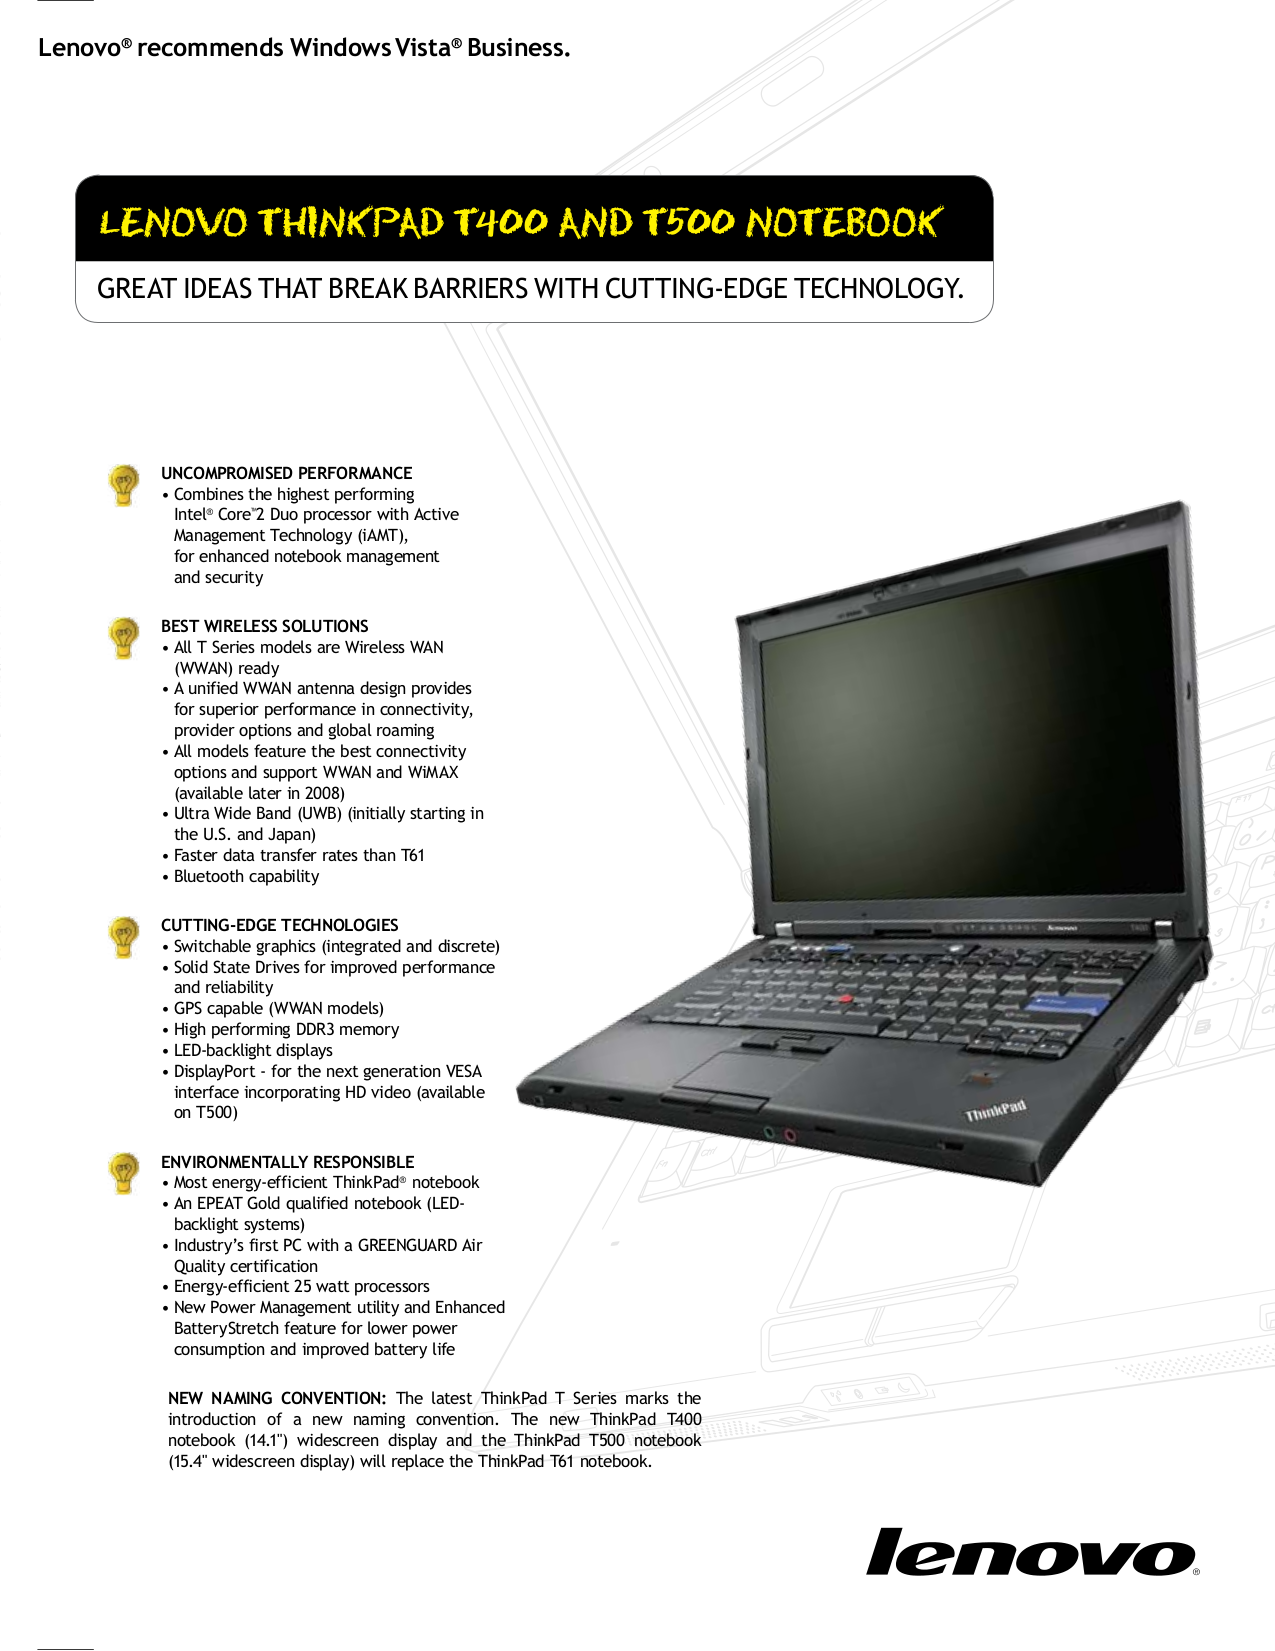 thinkpad t400 manual open source user manual u2022 rh dramatic varieties com lenovo thinkpad t400 service manual lenovo t400 service manual